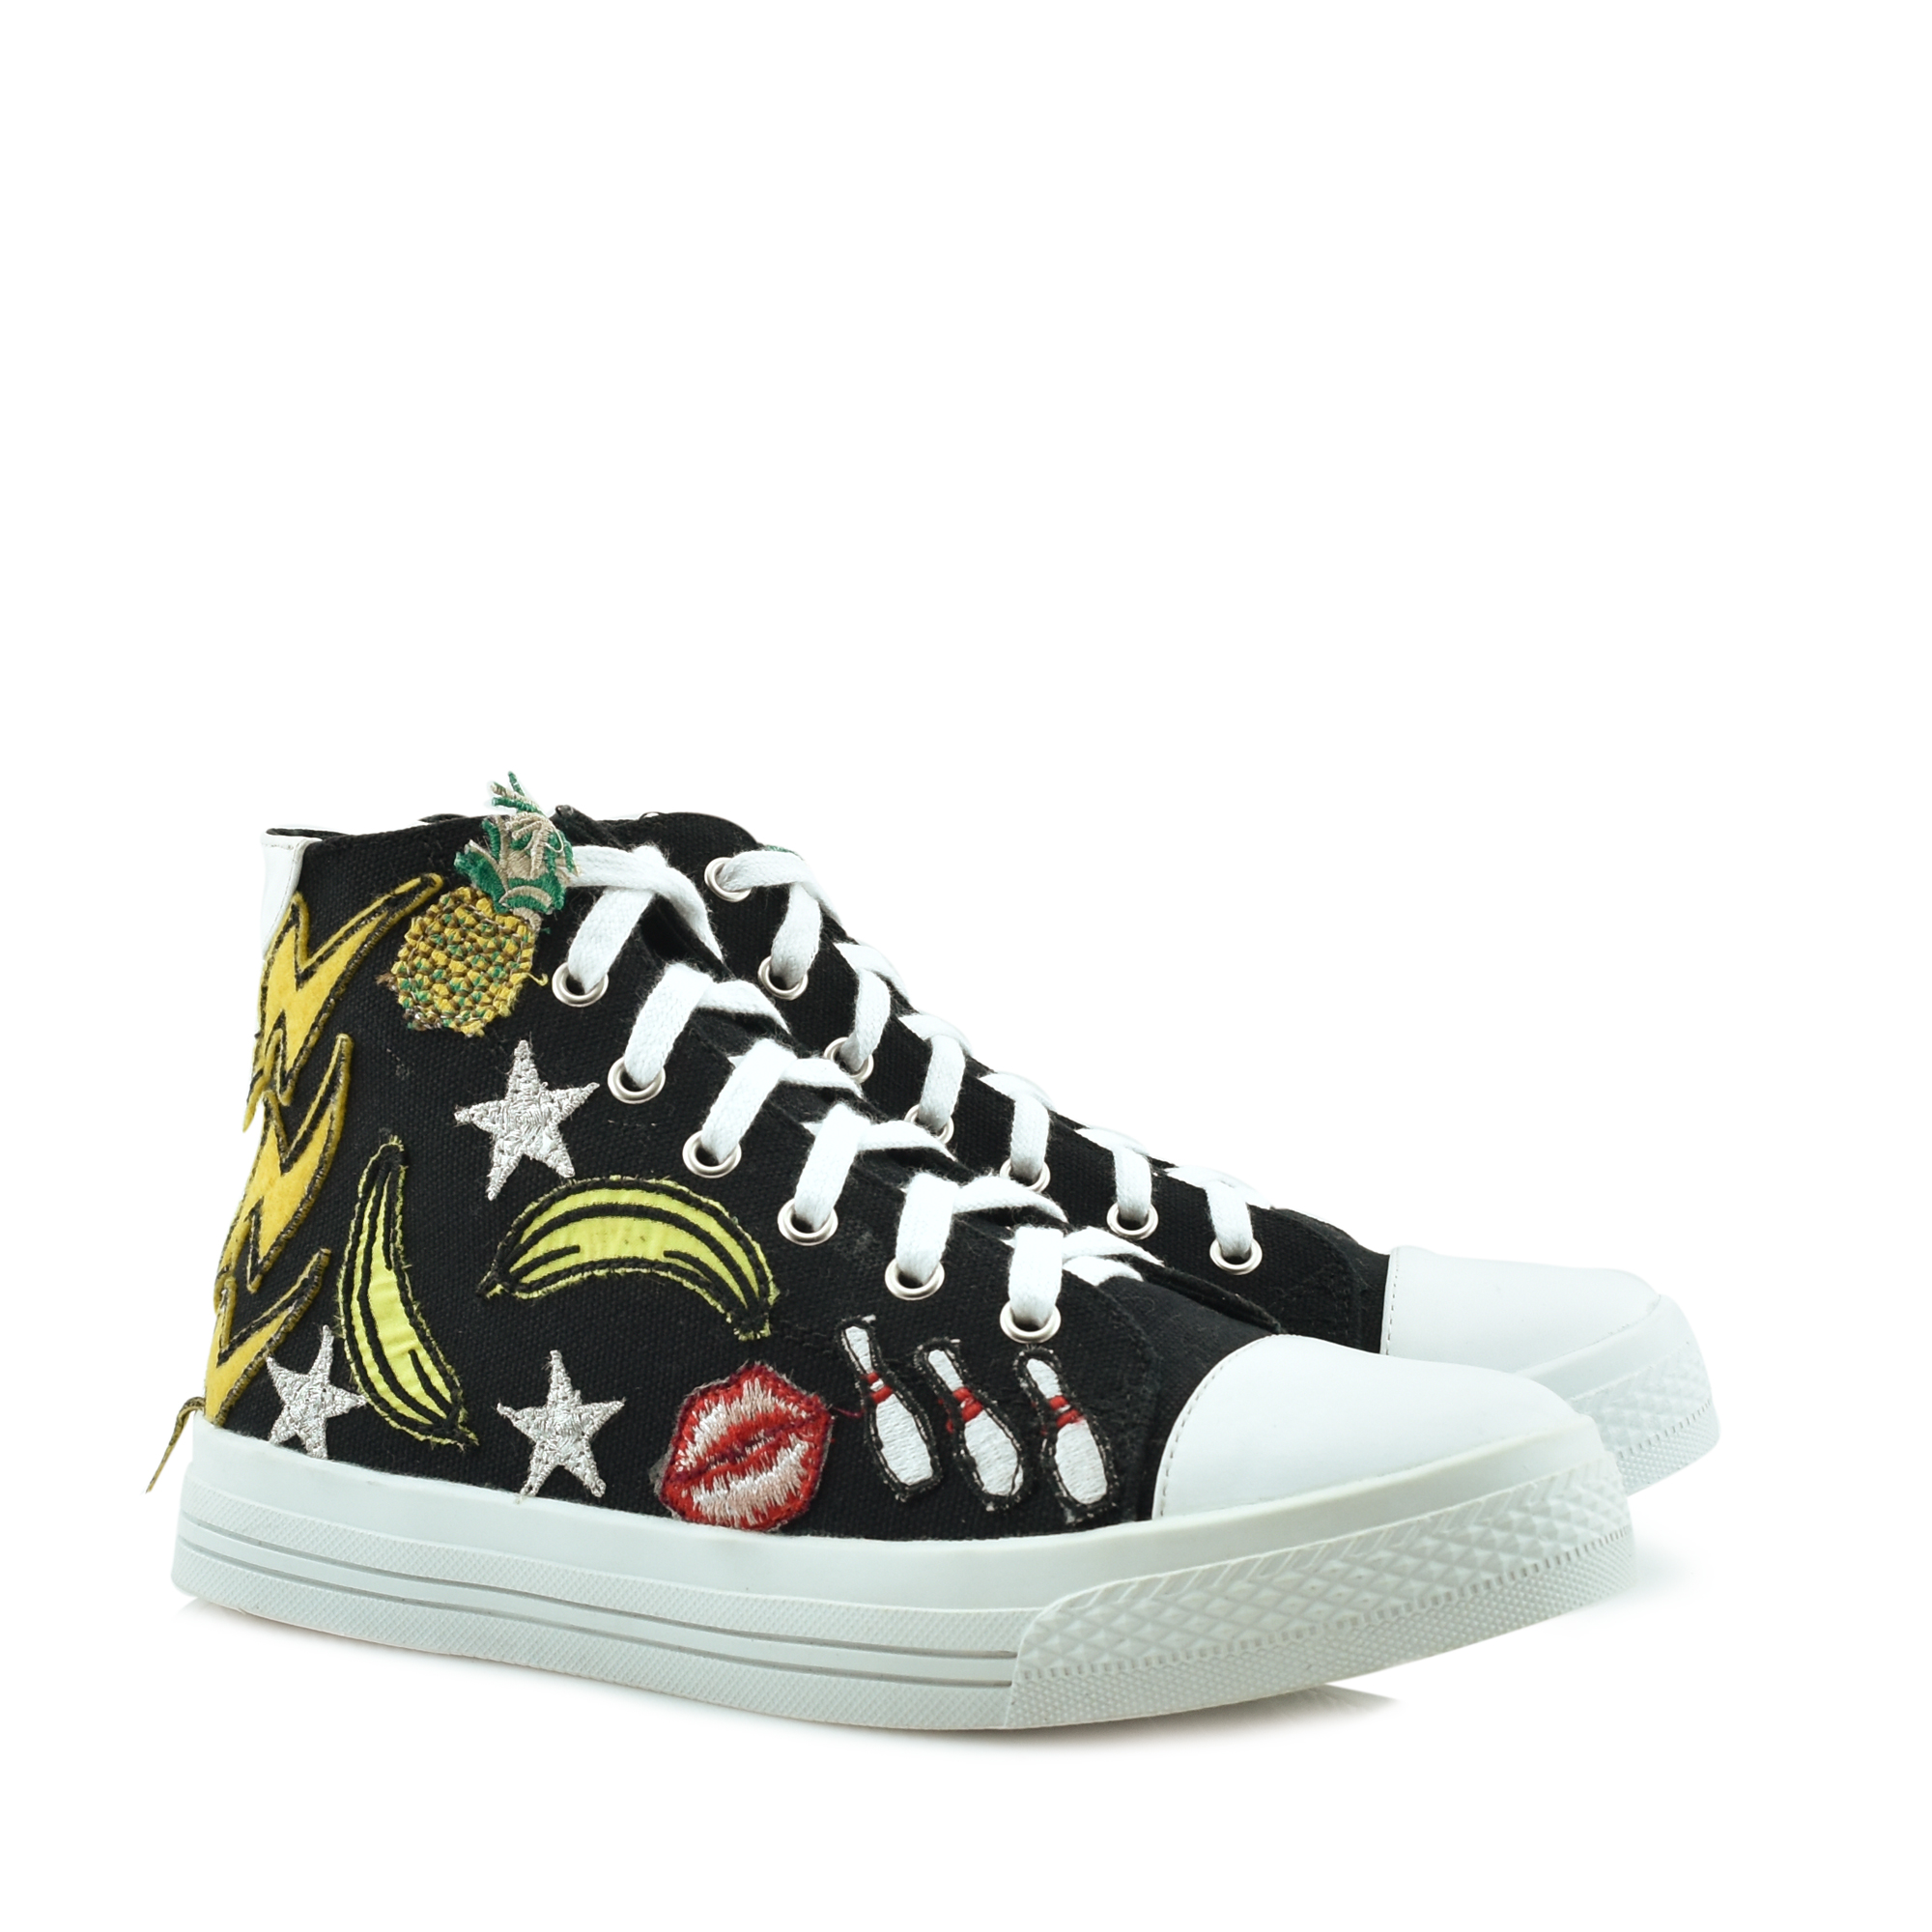 JEFFREY CAMPBELL BLACK/WHITE - JEFFREY STAR SNEAKERS